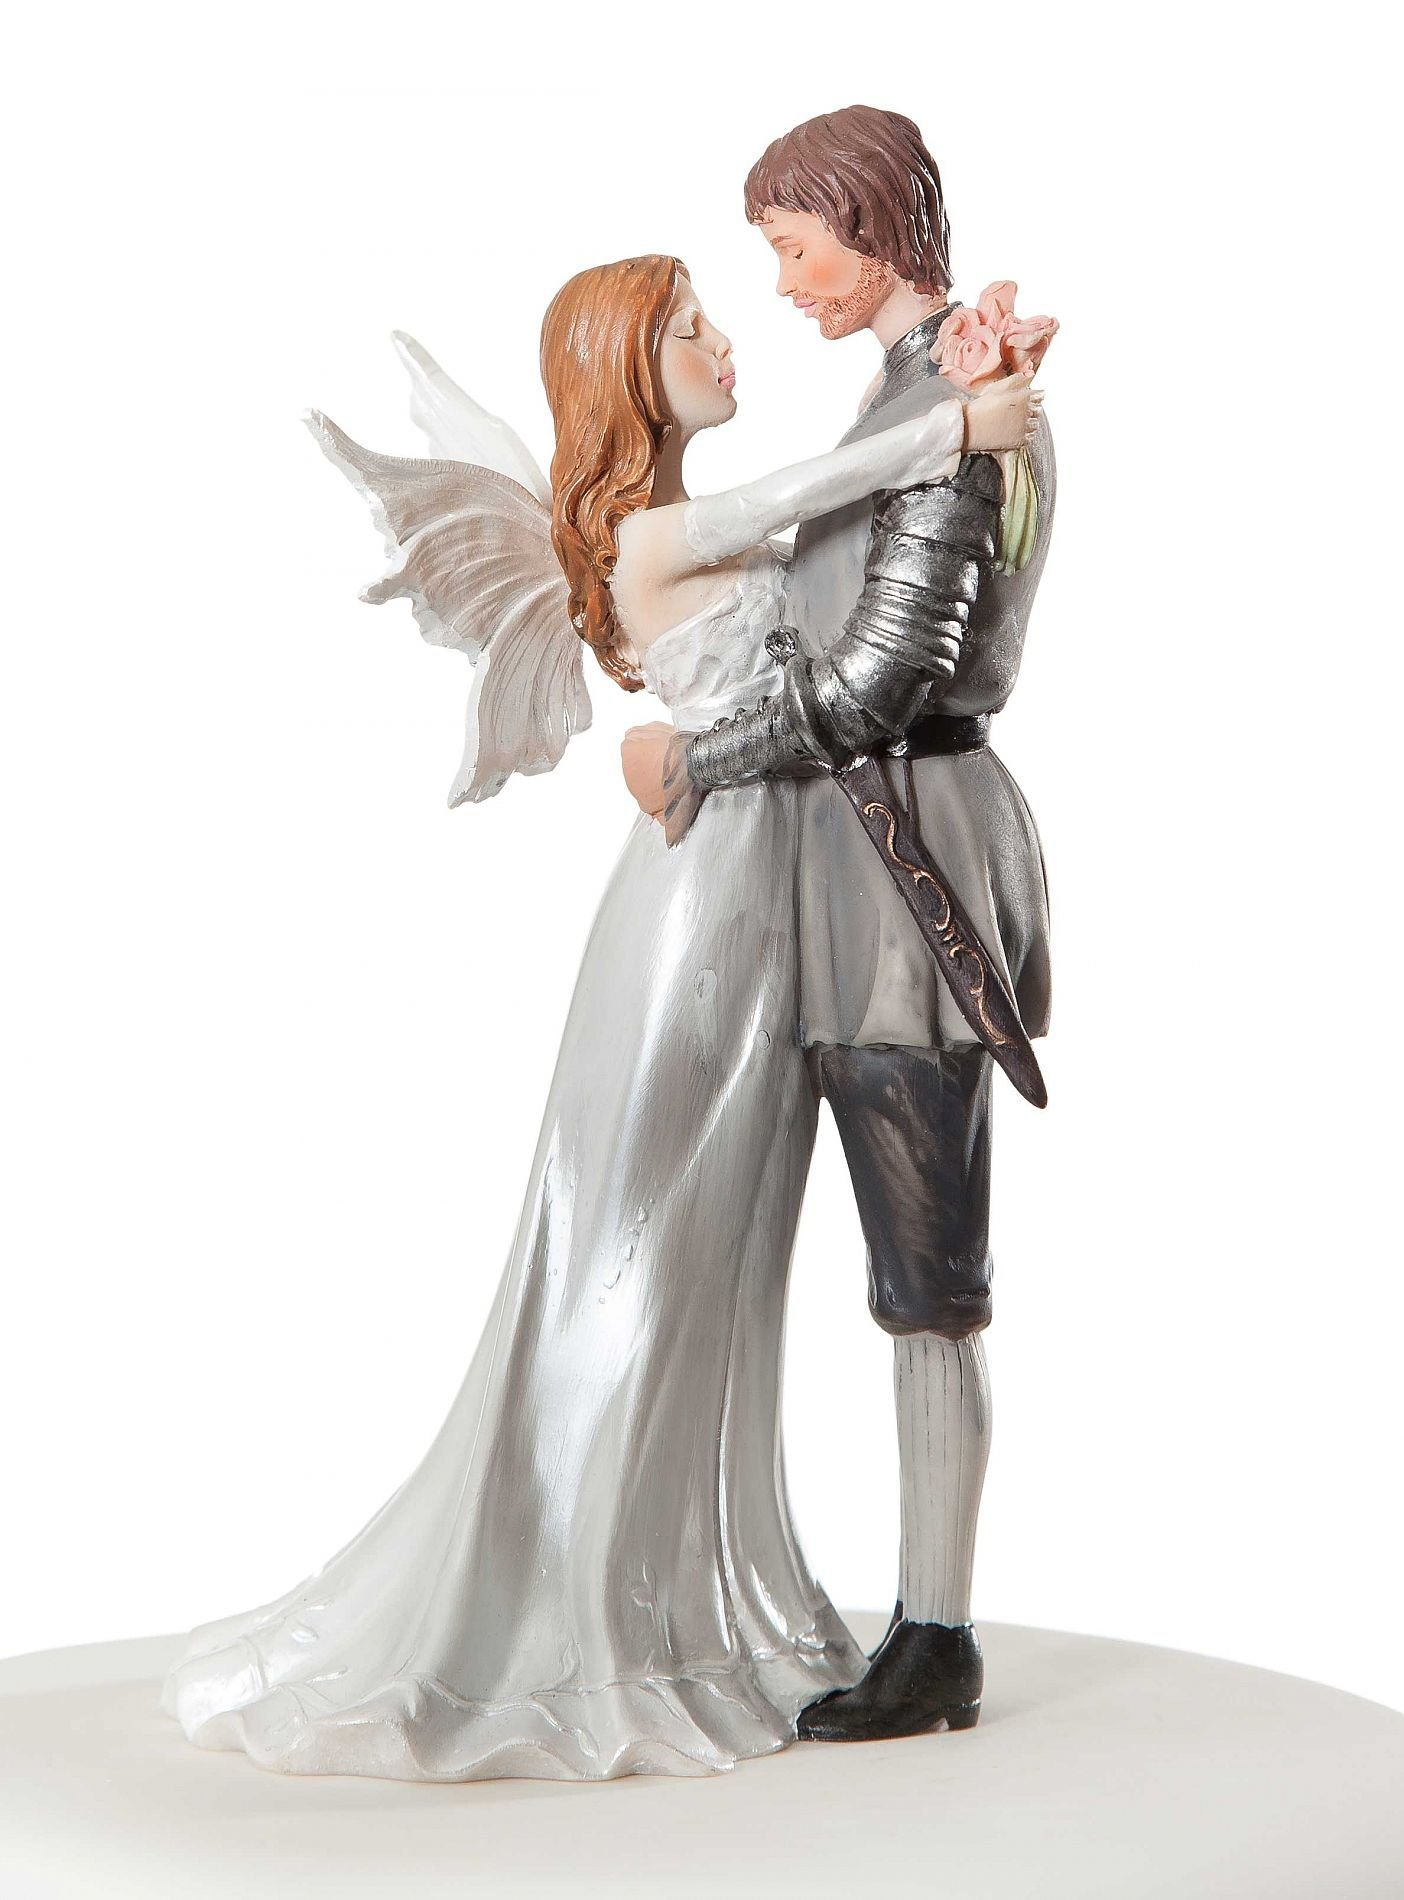 Wedding Collectibles Personalized Fantasy Fairy Wedding Cake Topper: Bride Hair: BROWN - Groom Hair: BROWN